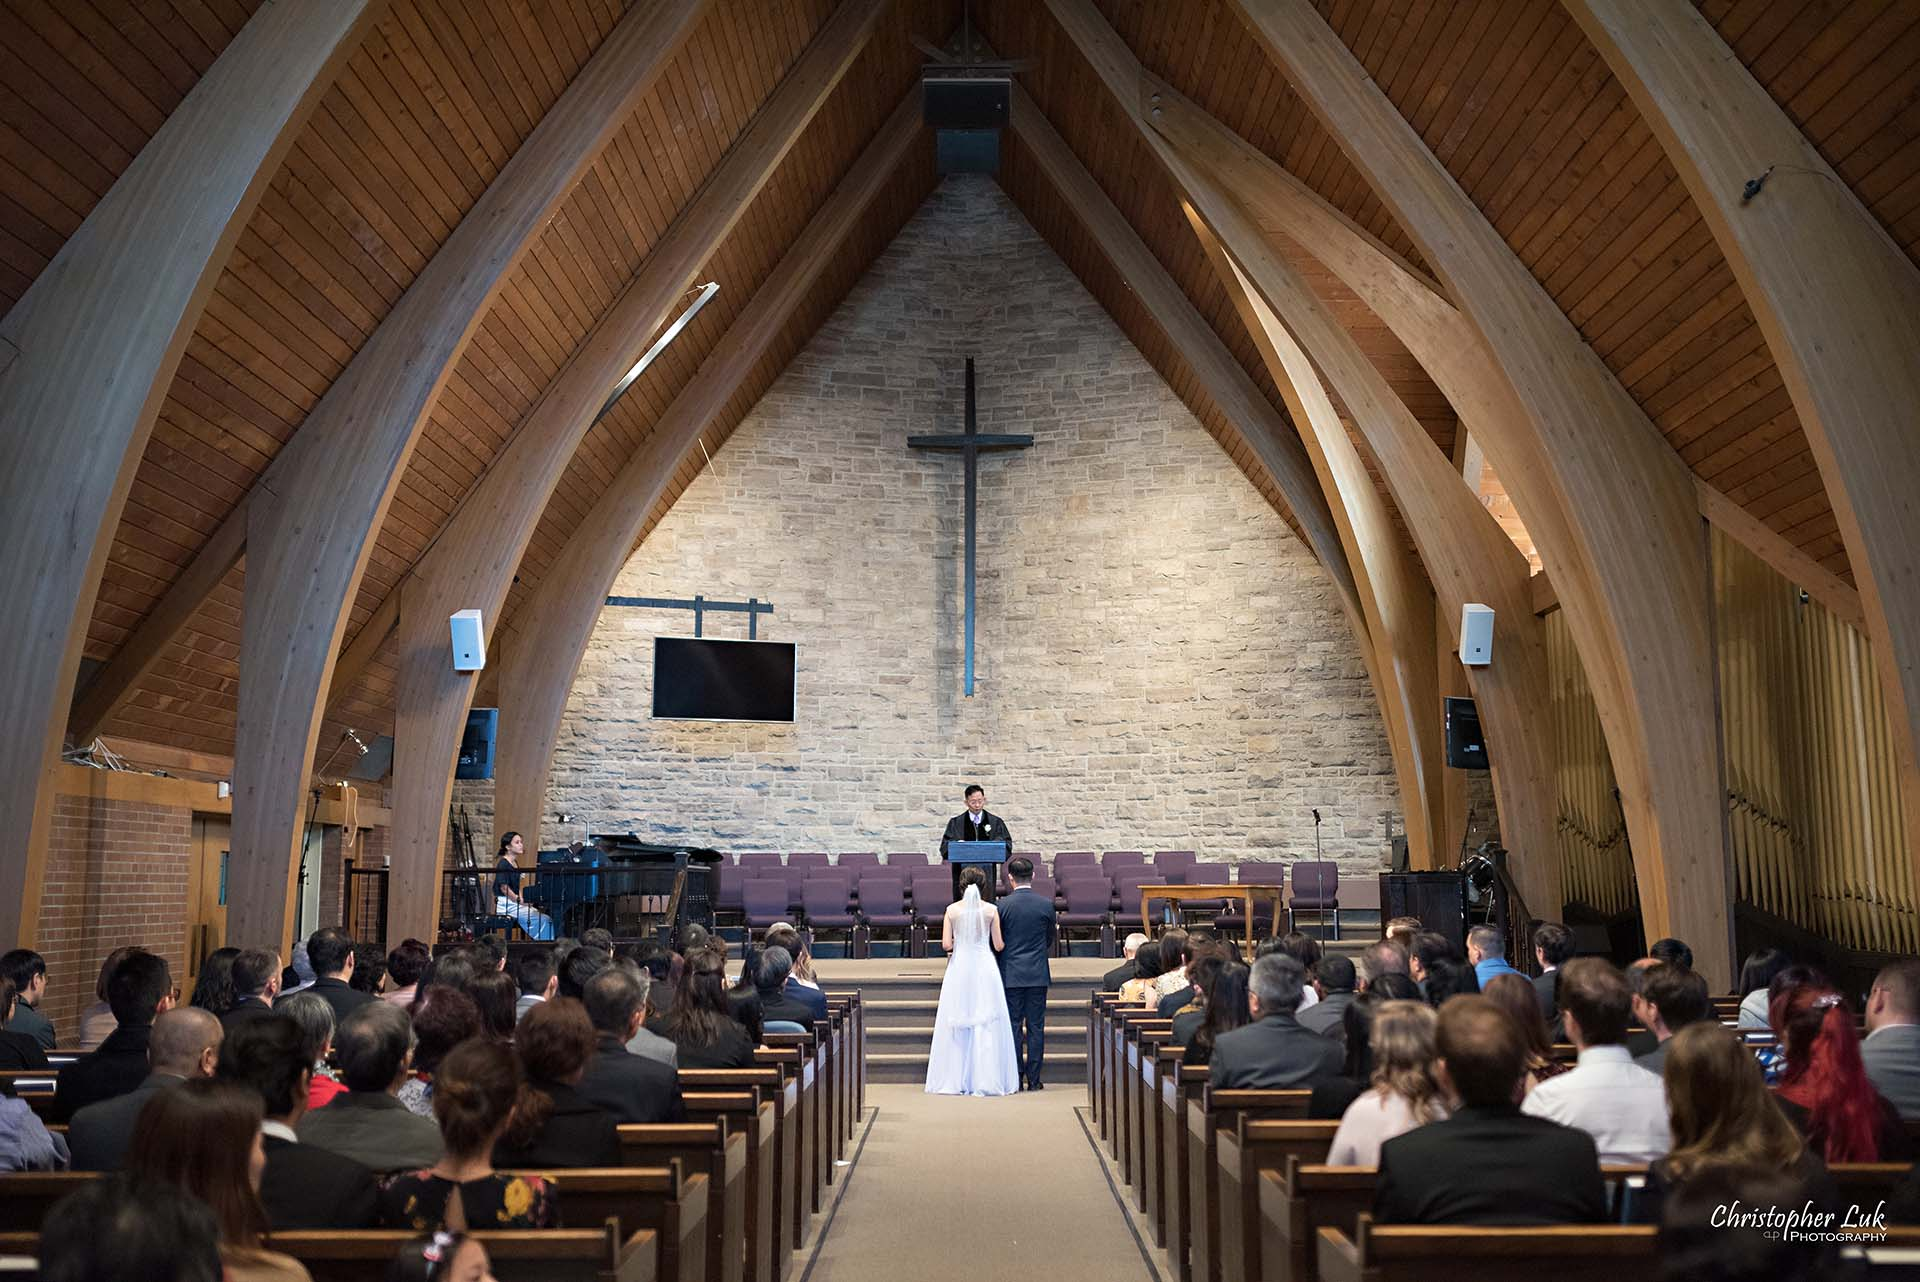 Christopher Luk Toronto Wedding Photographer - Natural Candid Photojournalistic Bride Groom Immanuel Baptist Church Ceremony Altar Front Wooden Beams Wide